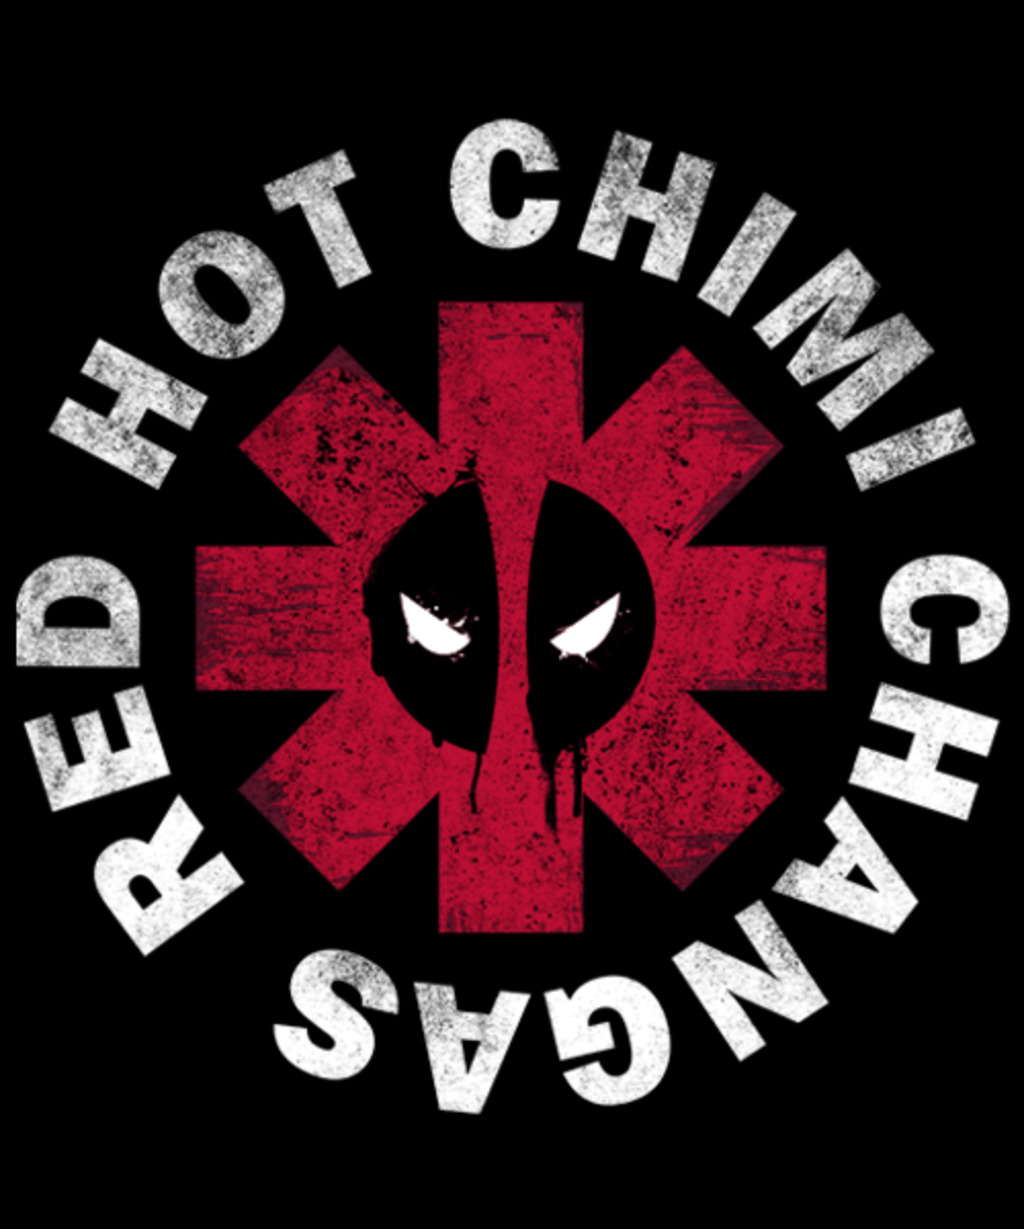 Qwertee: Red Hot Chimi Changas